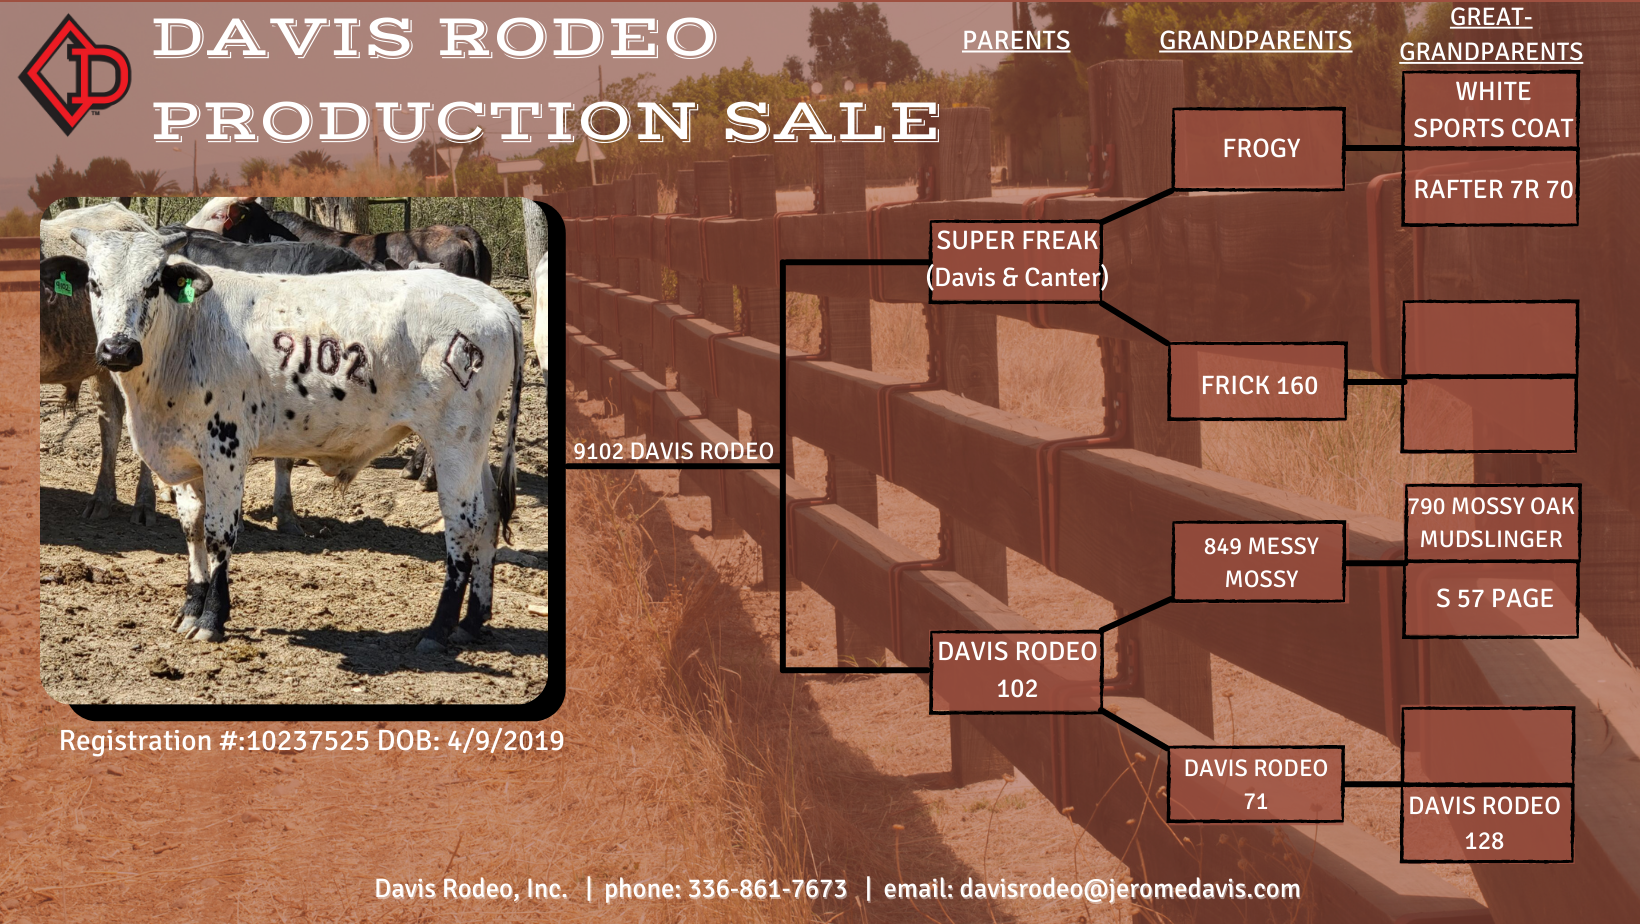 Davis Rodeo 9102 bull available during the March 2021 production sale